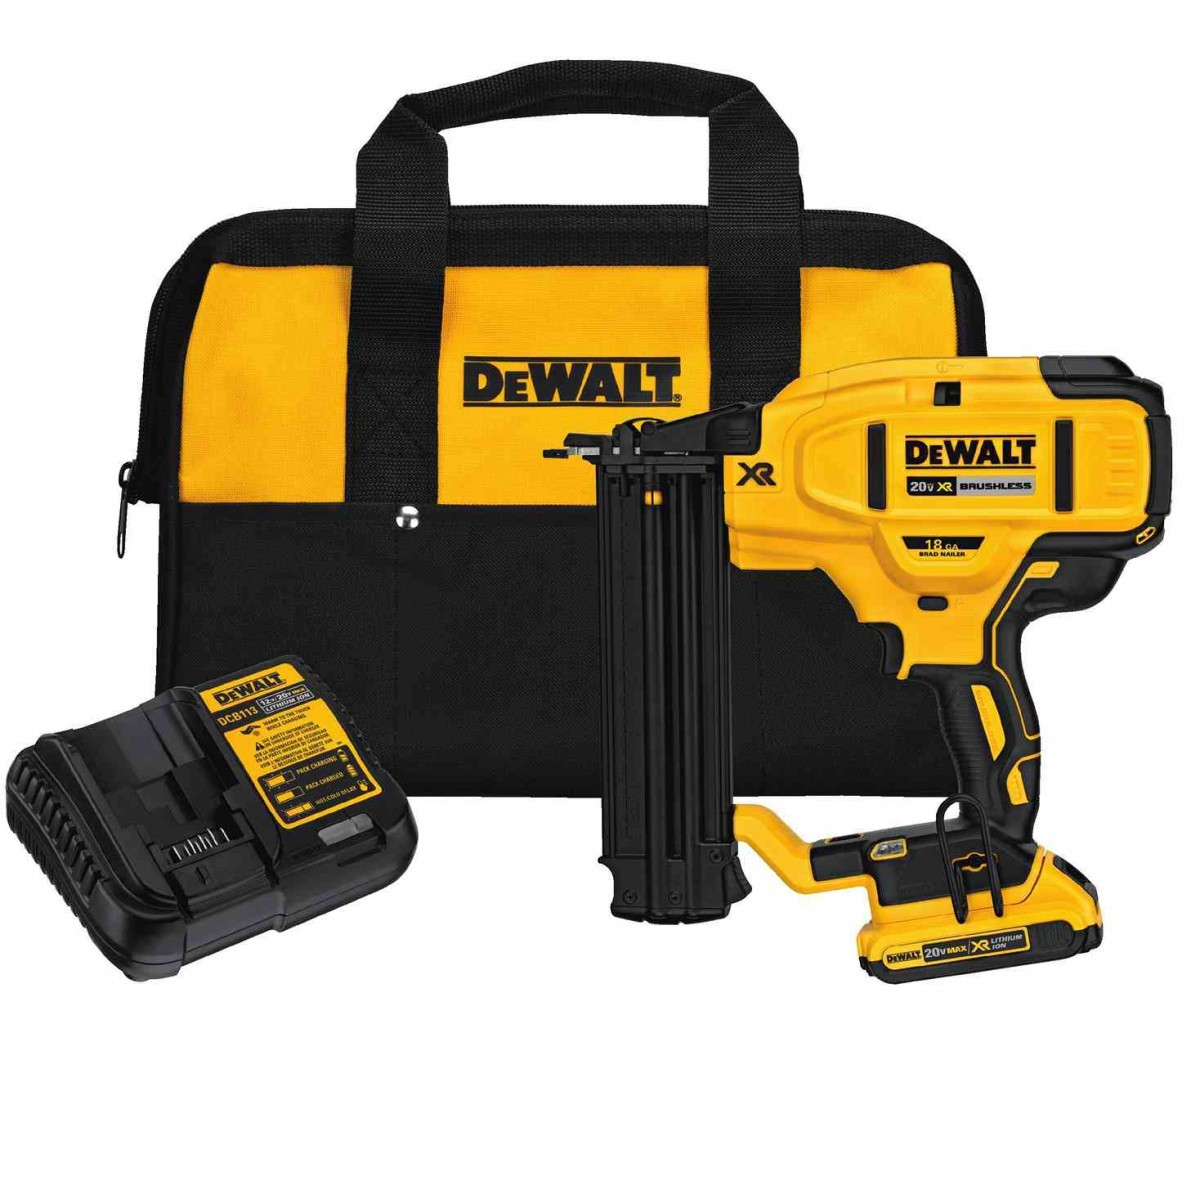 Dewalt dcn680d1 20v max xr 18 ga brushless brad nailer kit for Dewalt 20v brushless motor